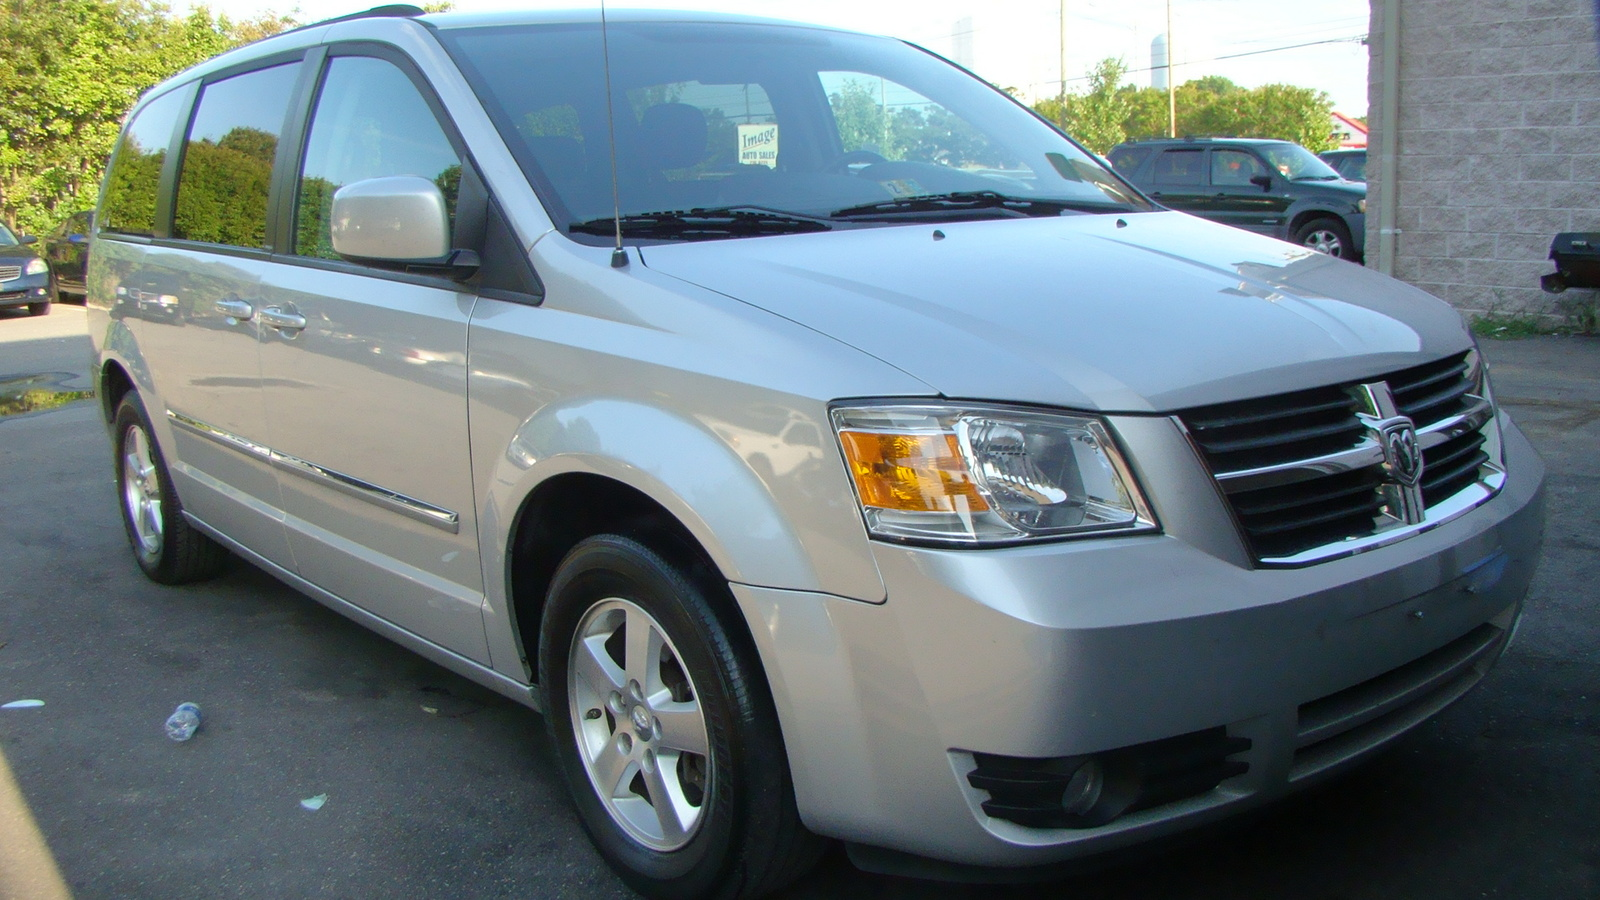 2008 dodge grand caravan sxt picture exterior. Cars Review. Best American Auto & Cars Review